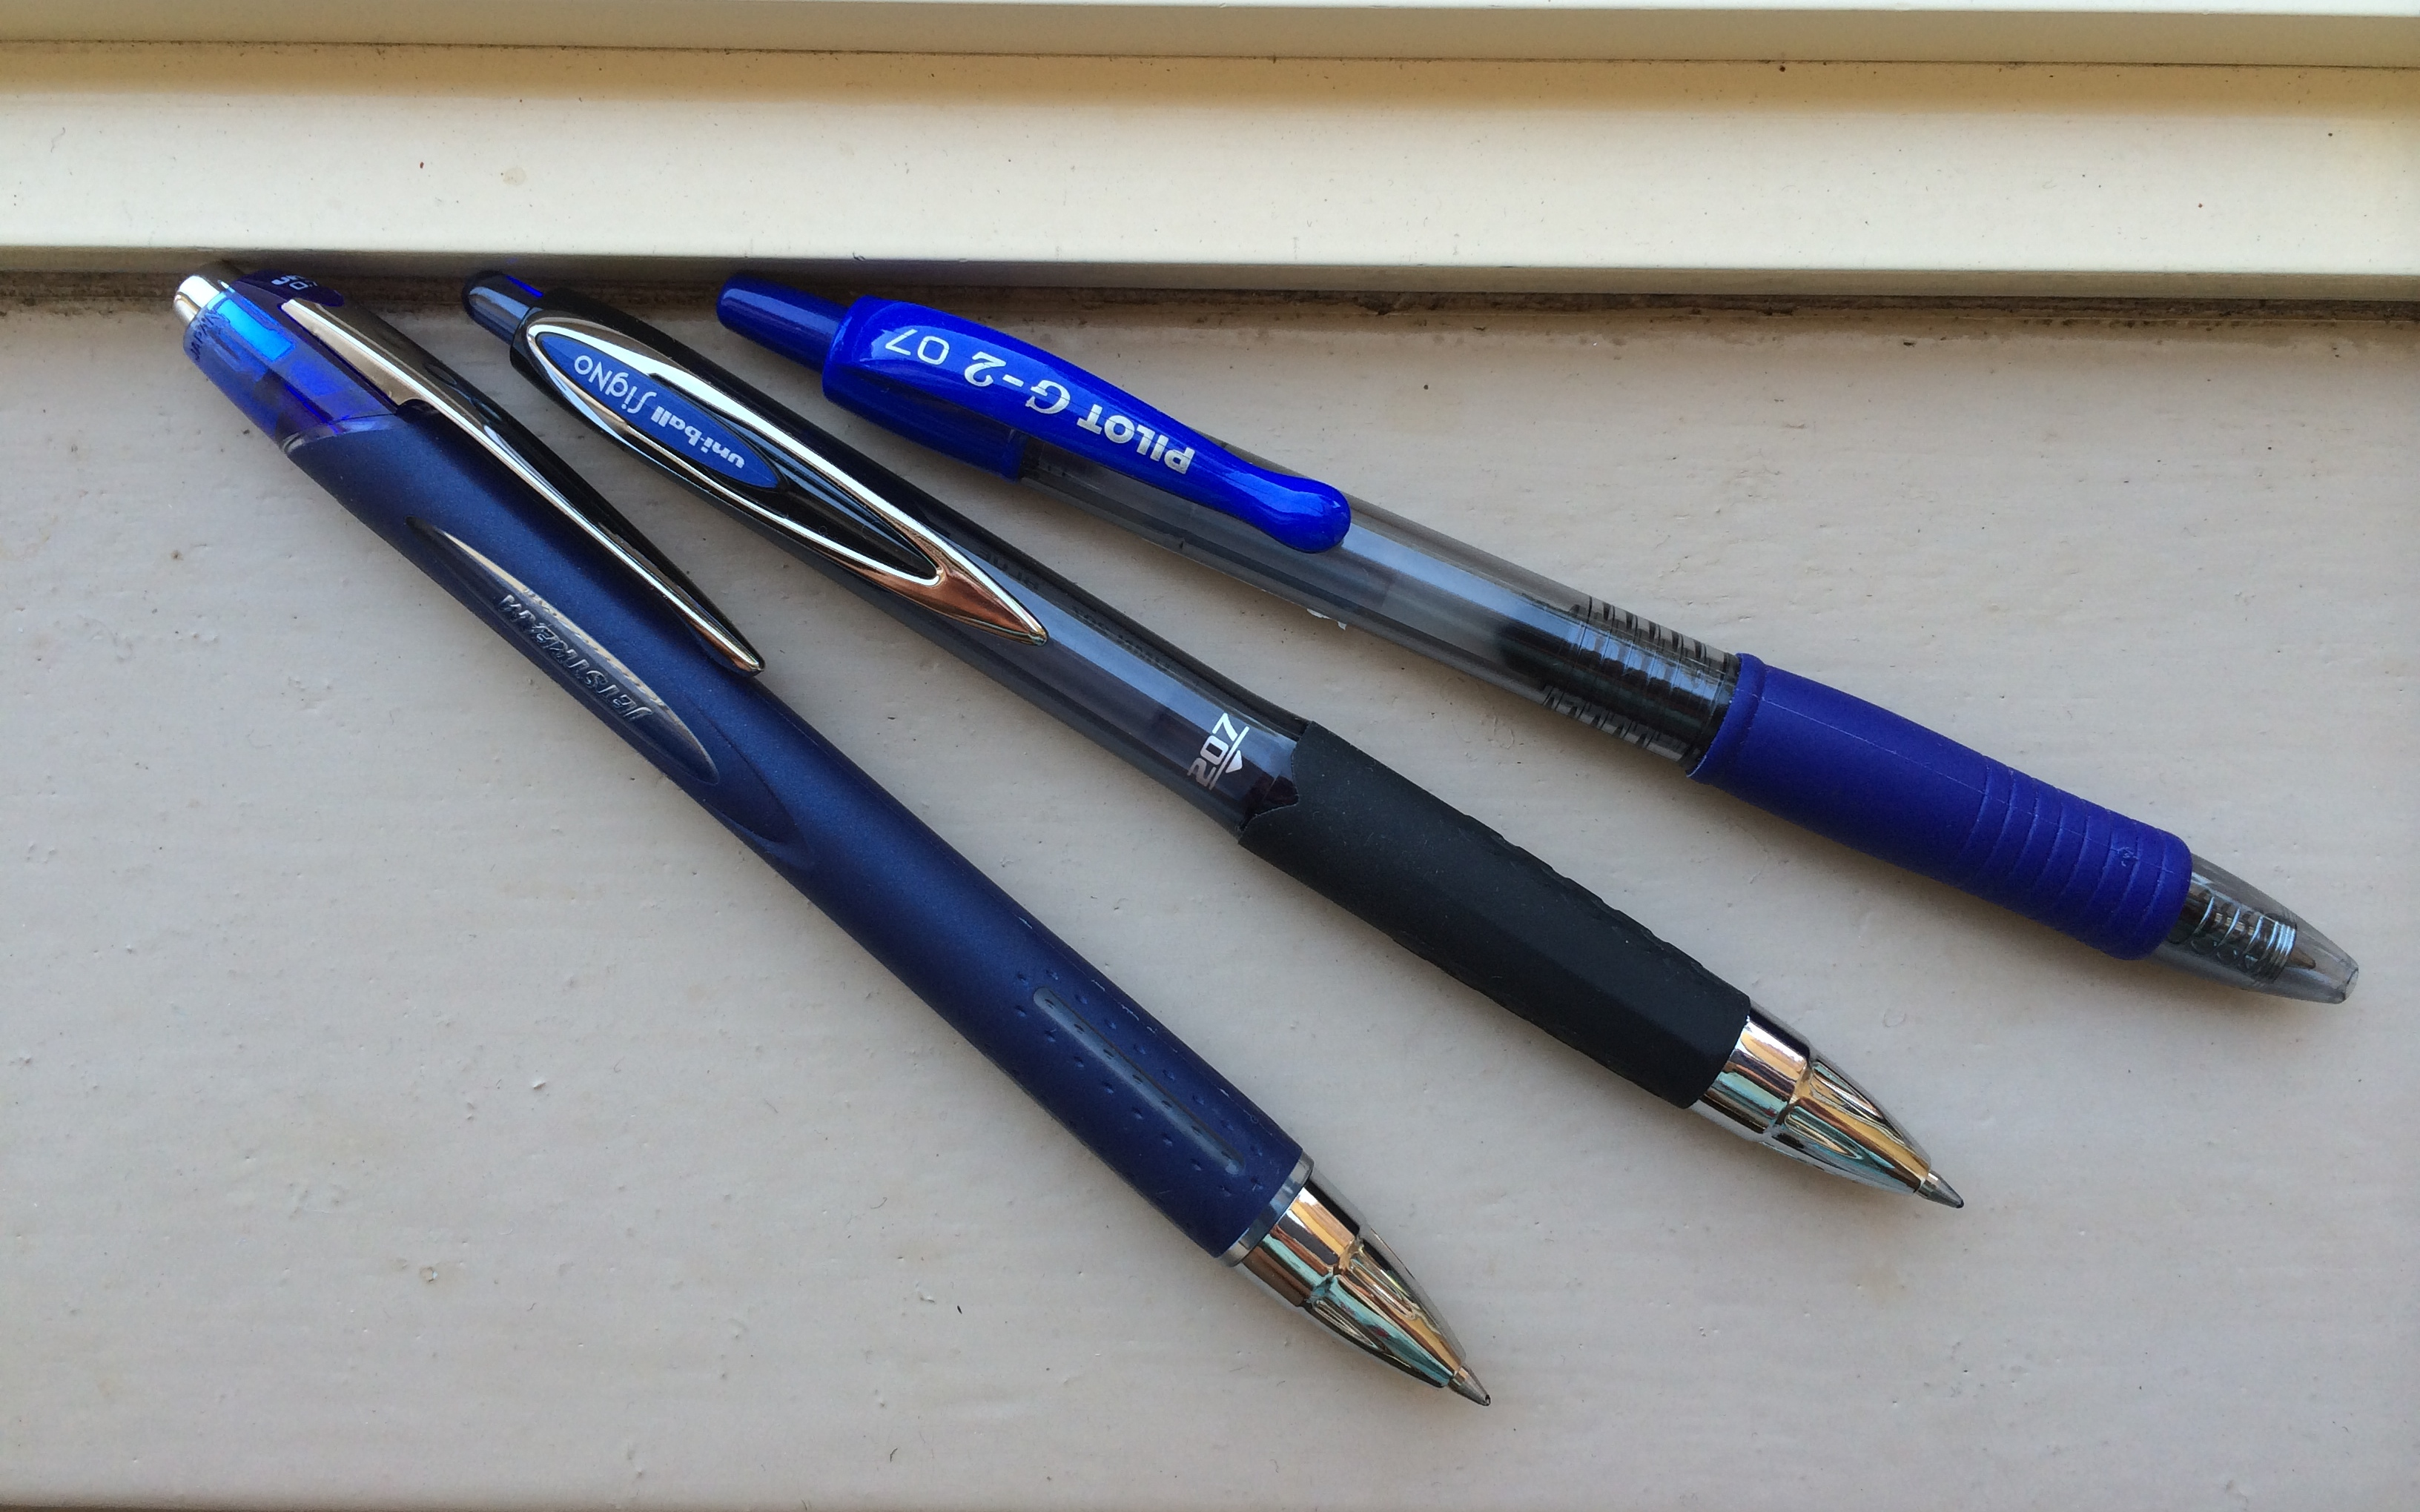 Uni Ball Jetstream Good But Not The Best Pete Denison Faster Pulpen From Left Signo 207 Pilot G